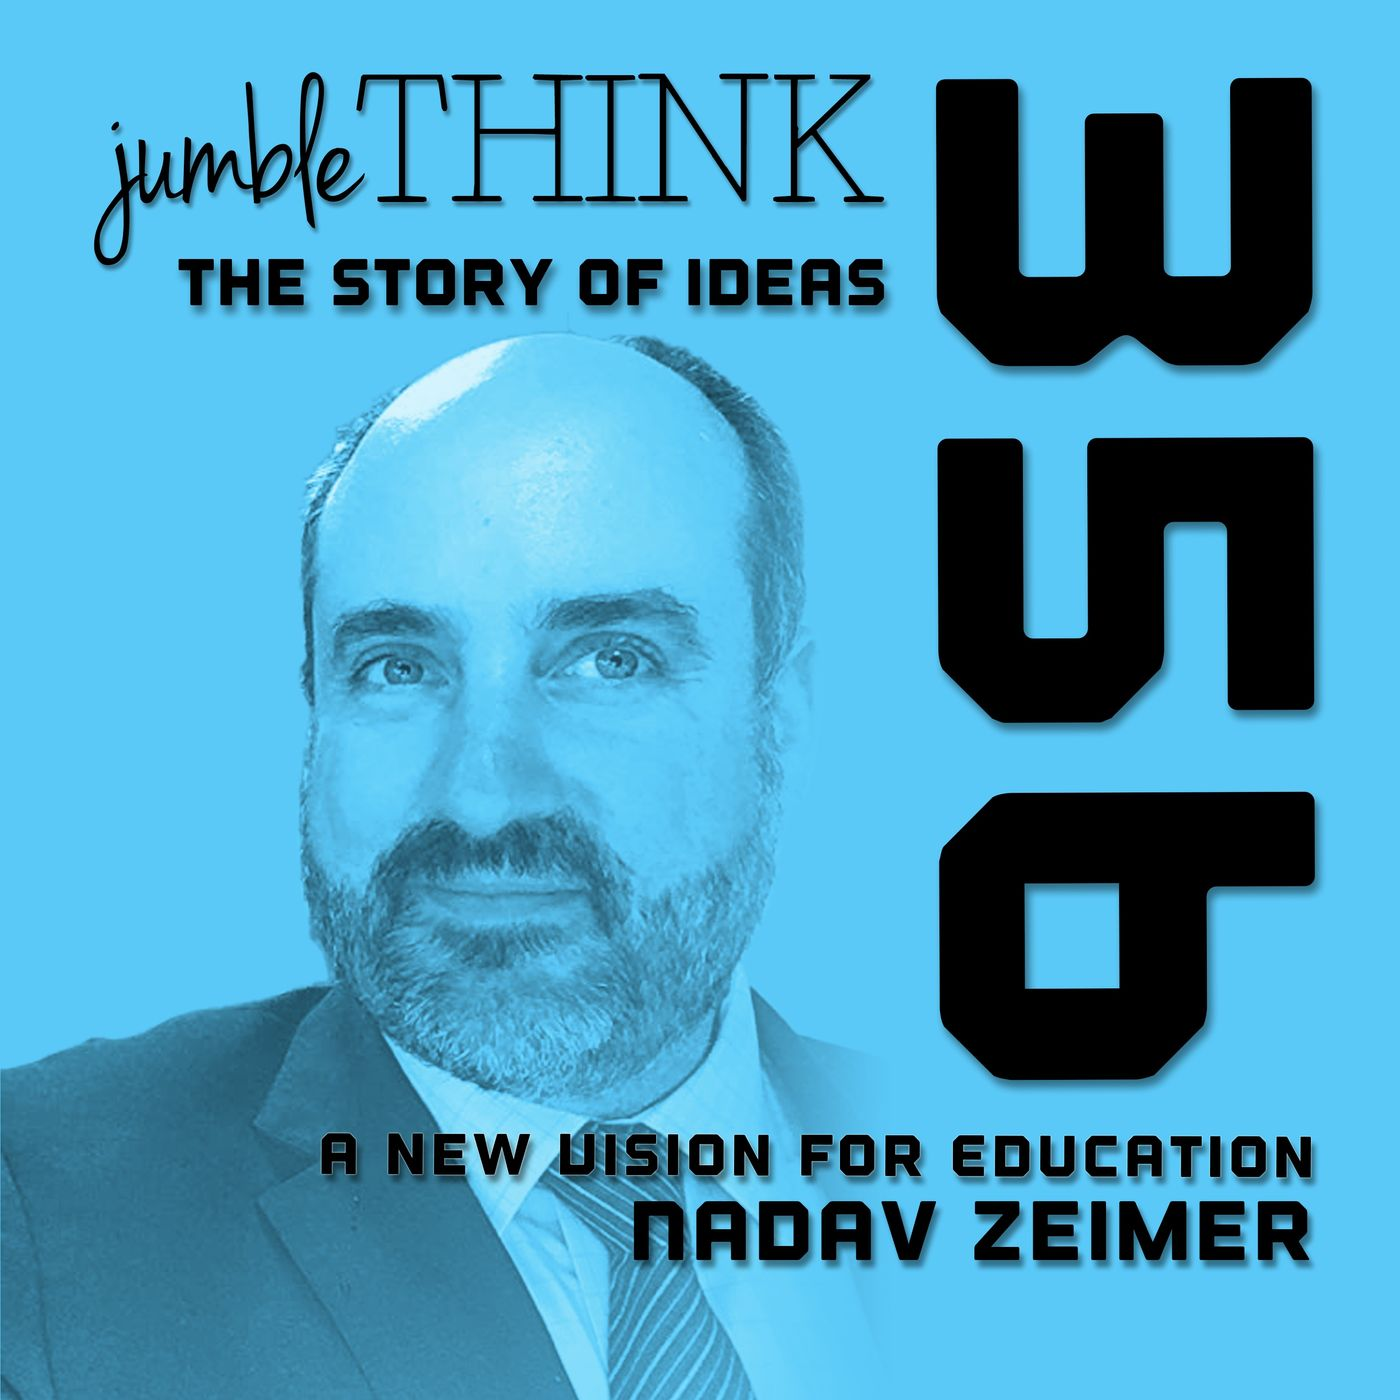 A New Vision for Educations with Nadav Zeimer